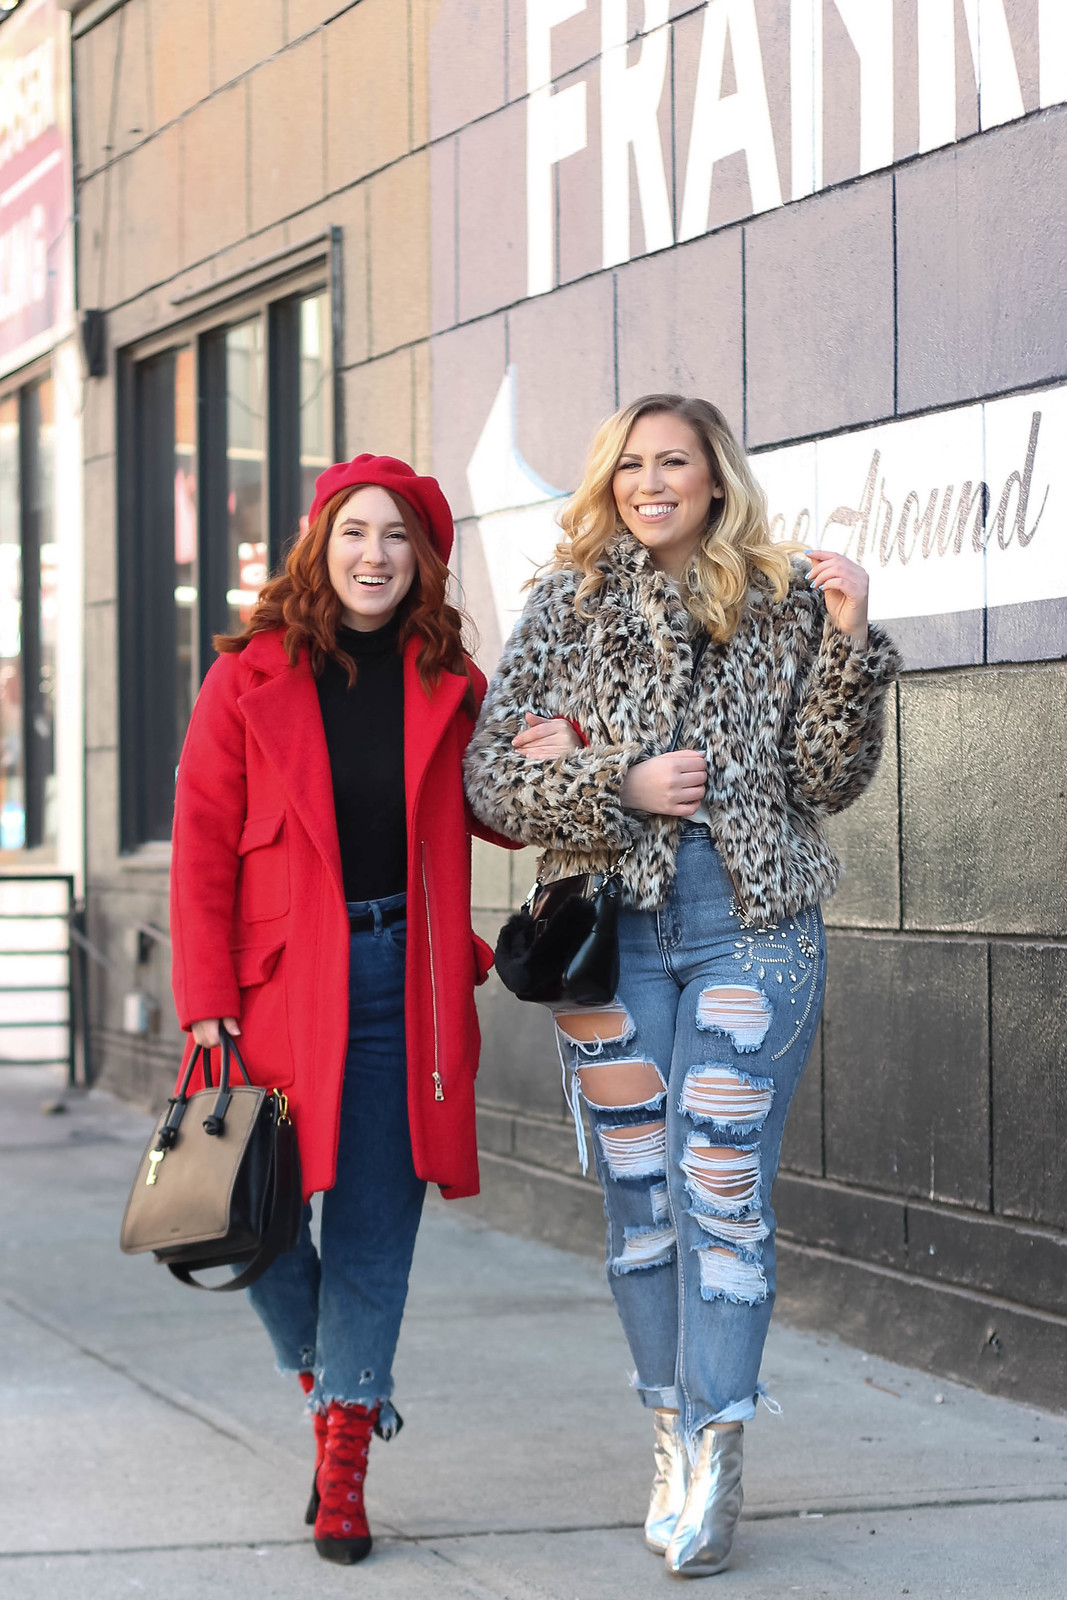 Blonde Girl Walking in Leopard Coat Distressed Jeans and Silver Booties with Red Head Girl in Red Beret and Red Coat 2 Fun Ways to Dress Up Your Jeans This Winter